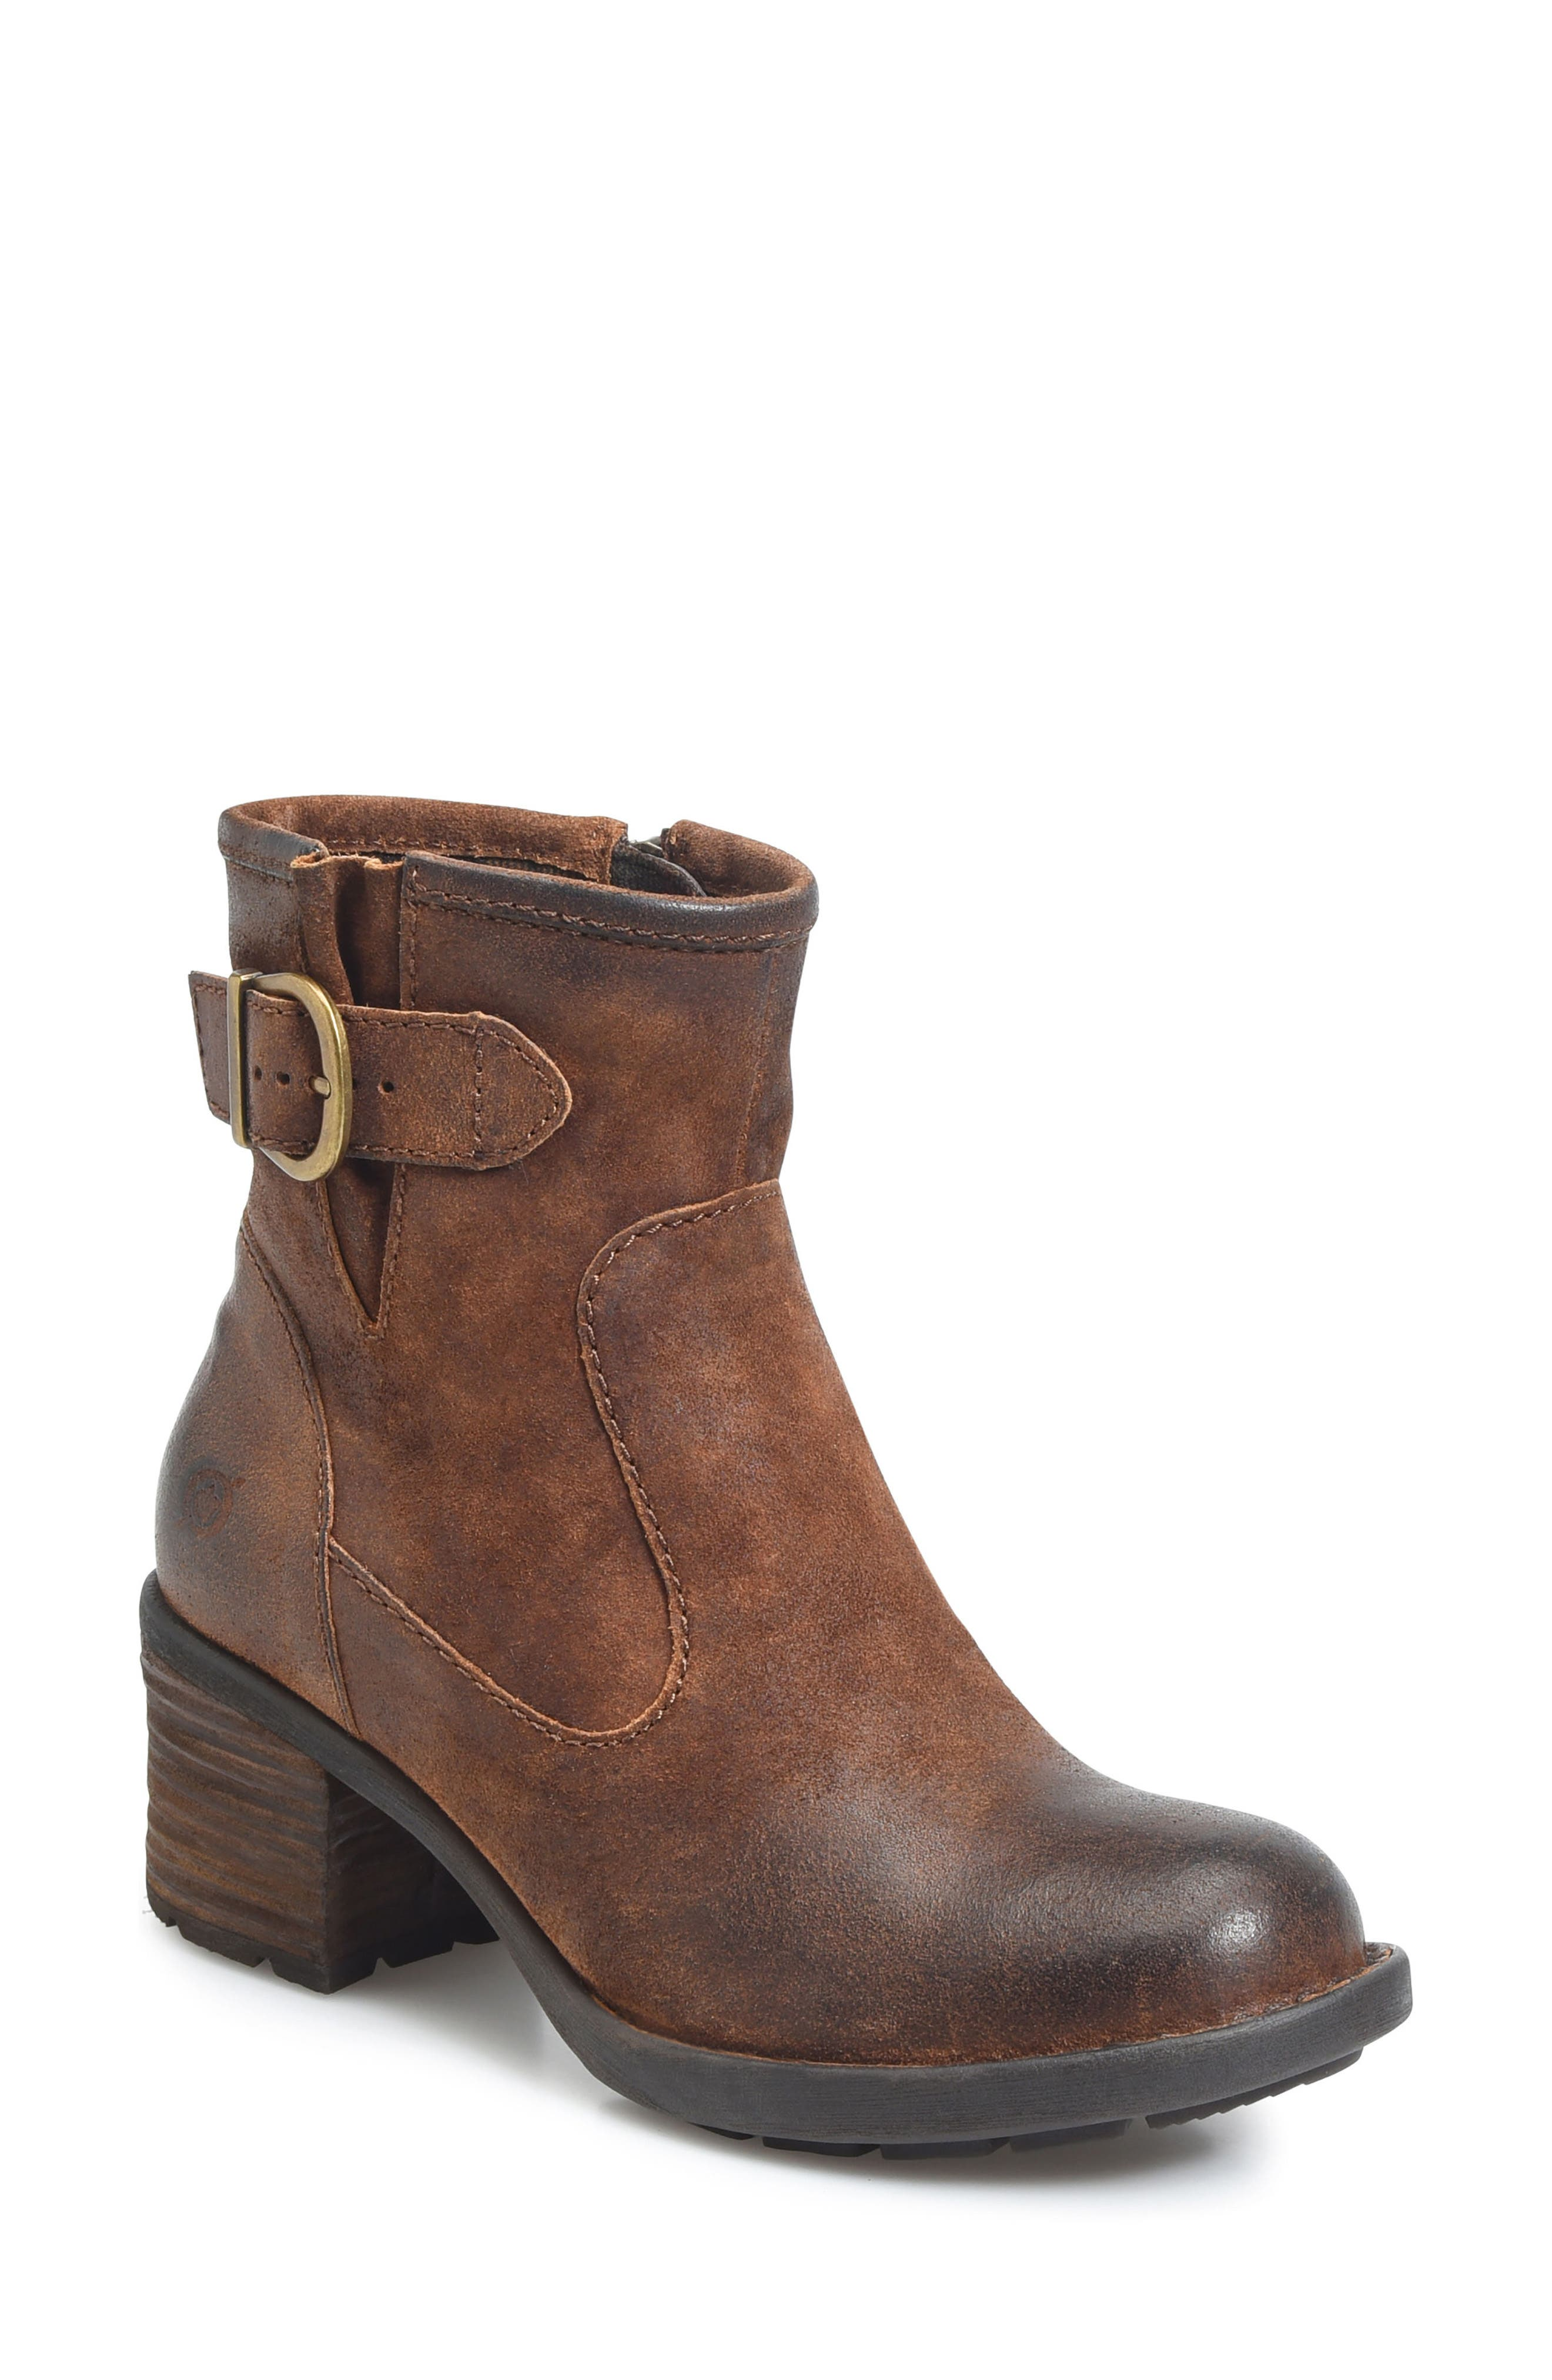 Gunn Engineer Bootie,                         Main,                         color, Rust Distressed Leather